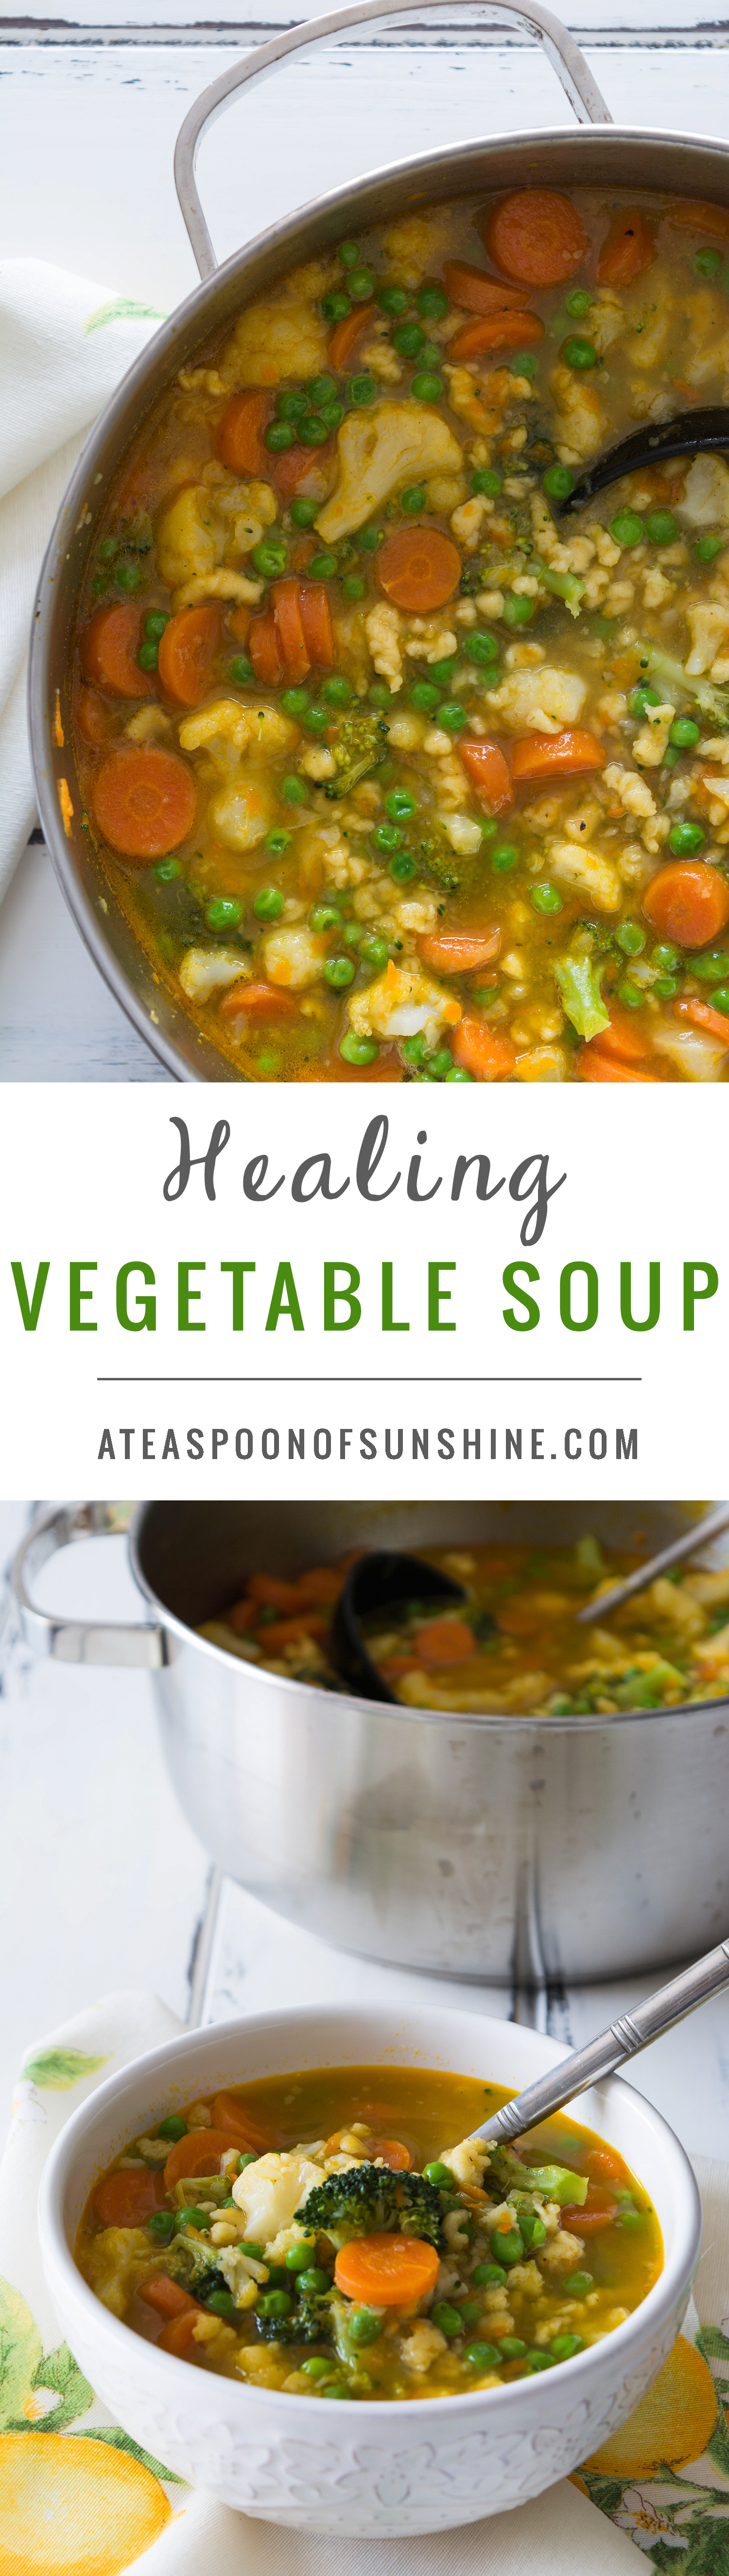 Healing Vegetable Soup